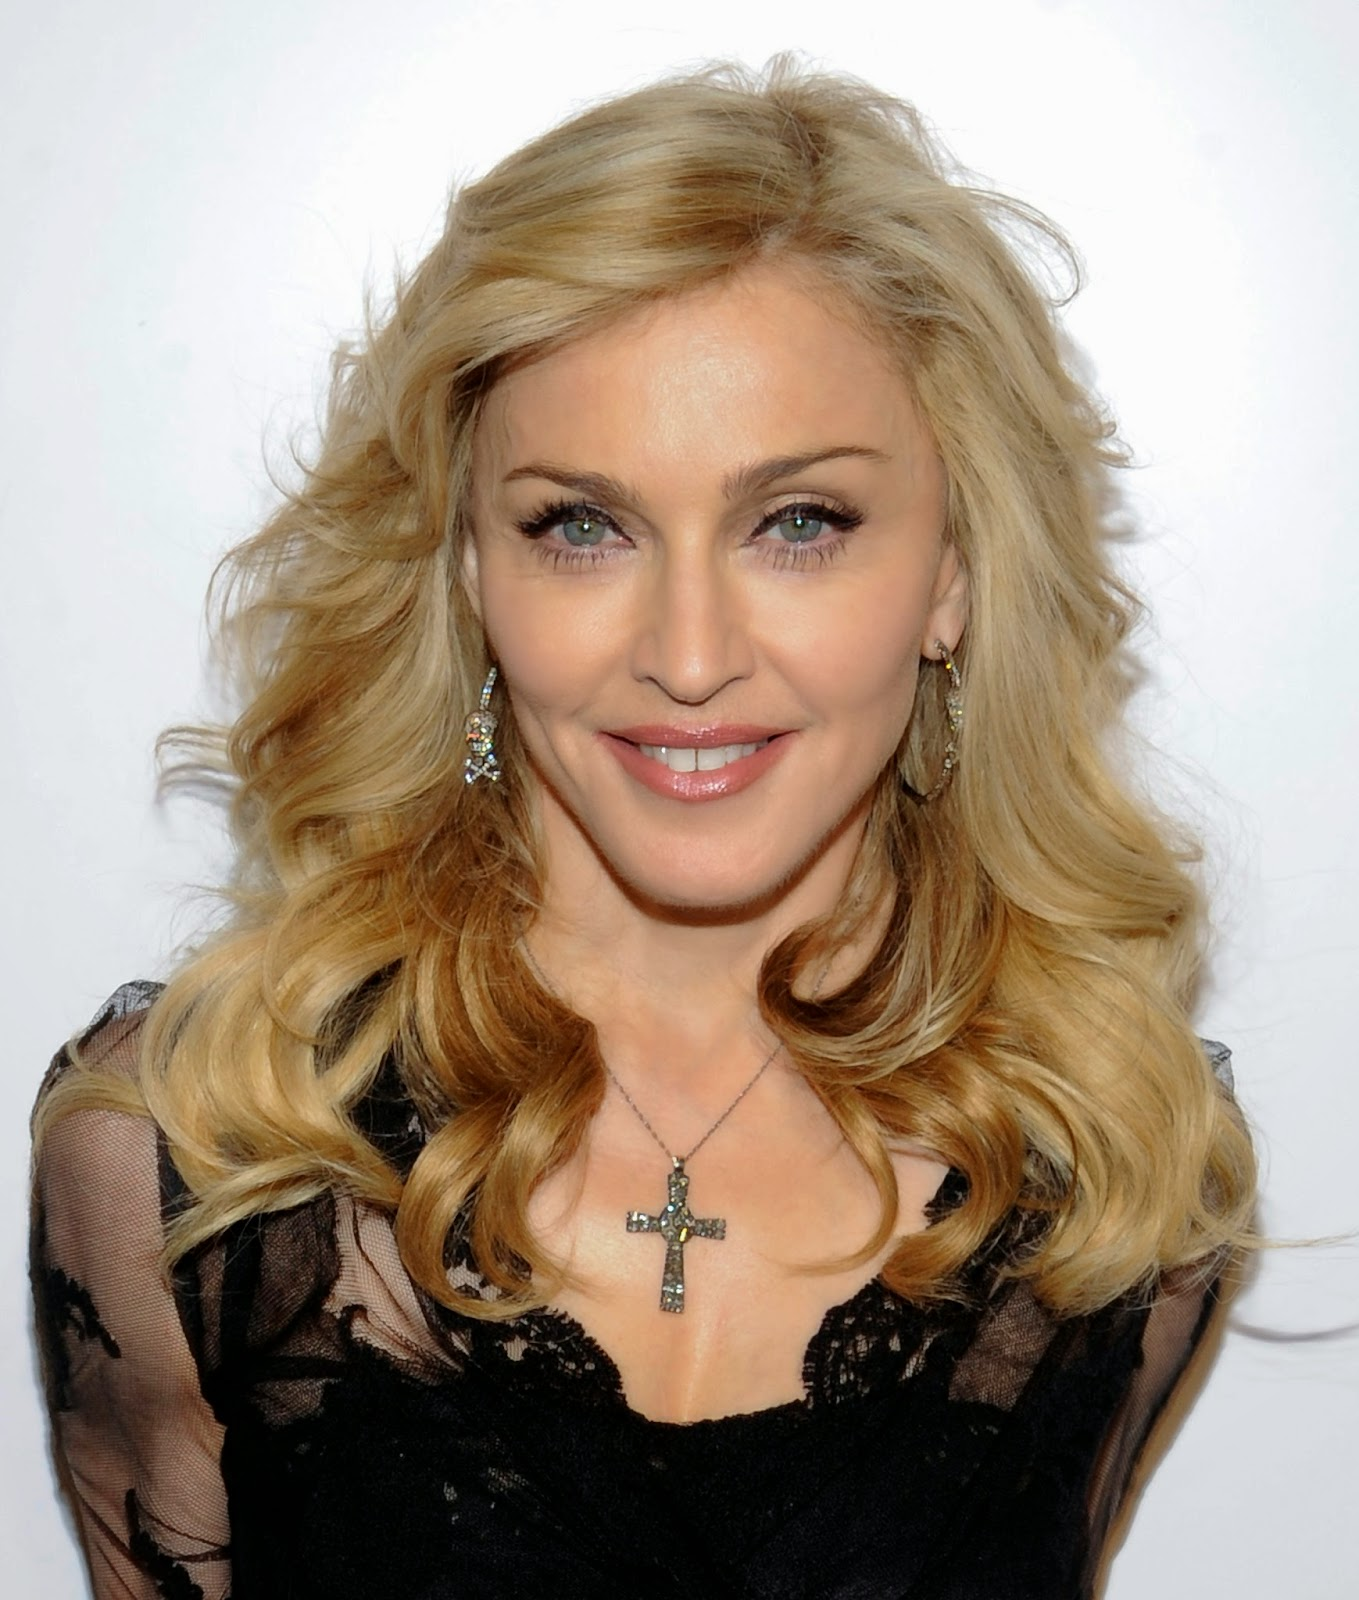 Super star life style photo gallary : Madonna Louise Ciccone